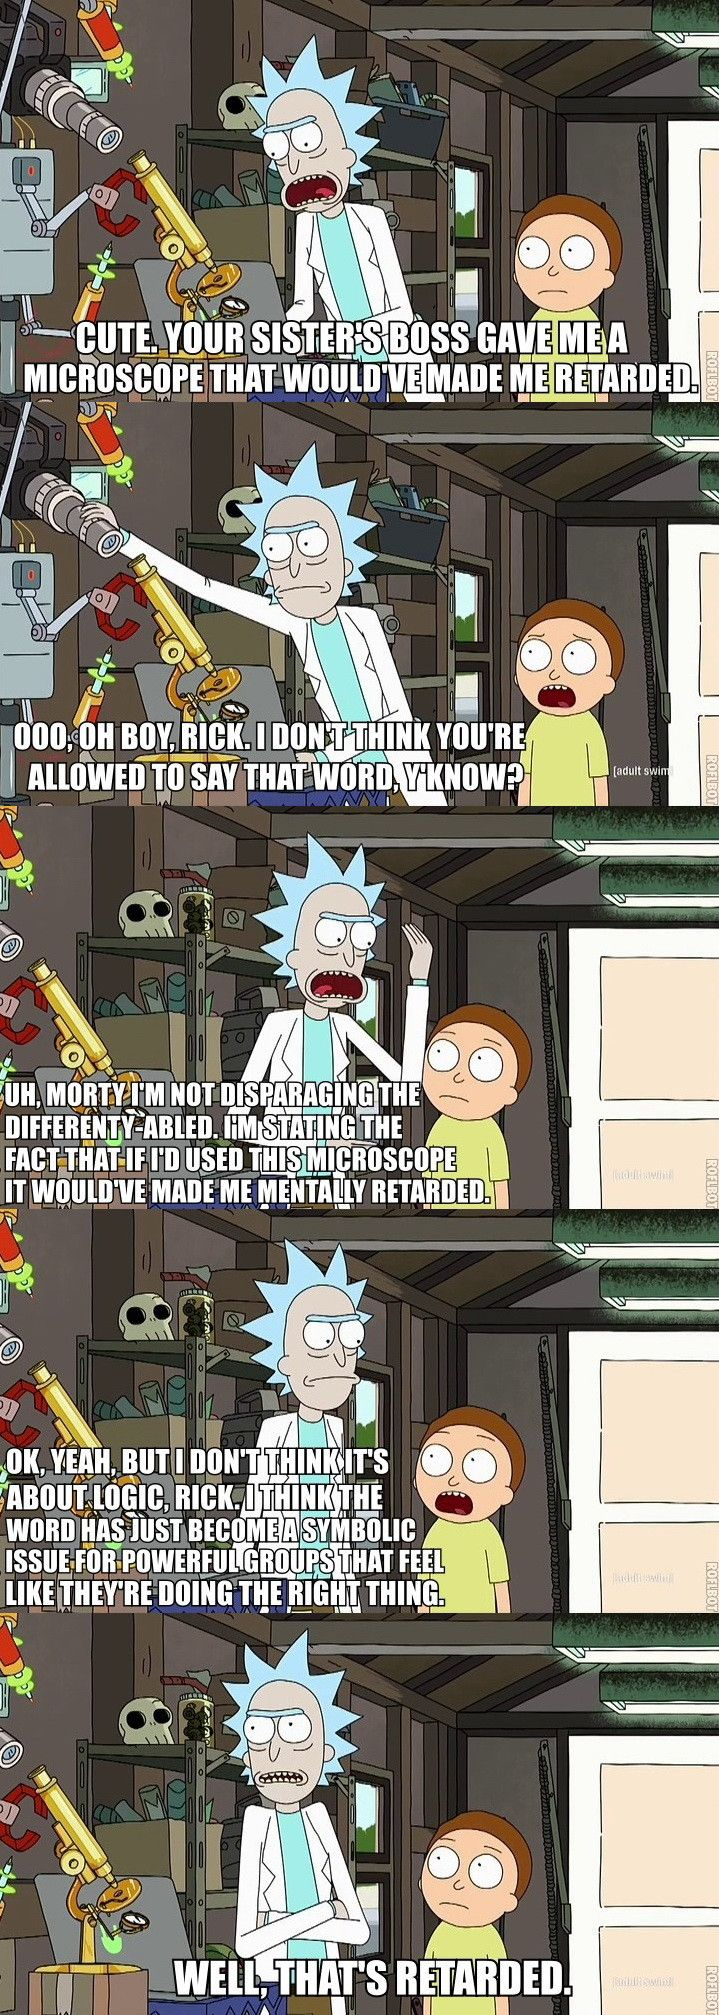 Rick Sanchez Quotes 112 Best Rick And Morty Images On Pinterest  Animated Cartoons